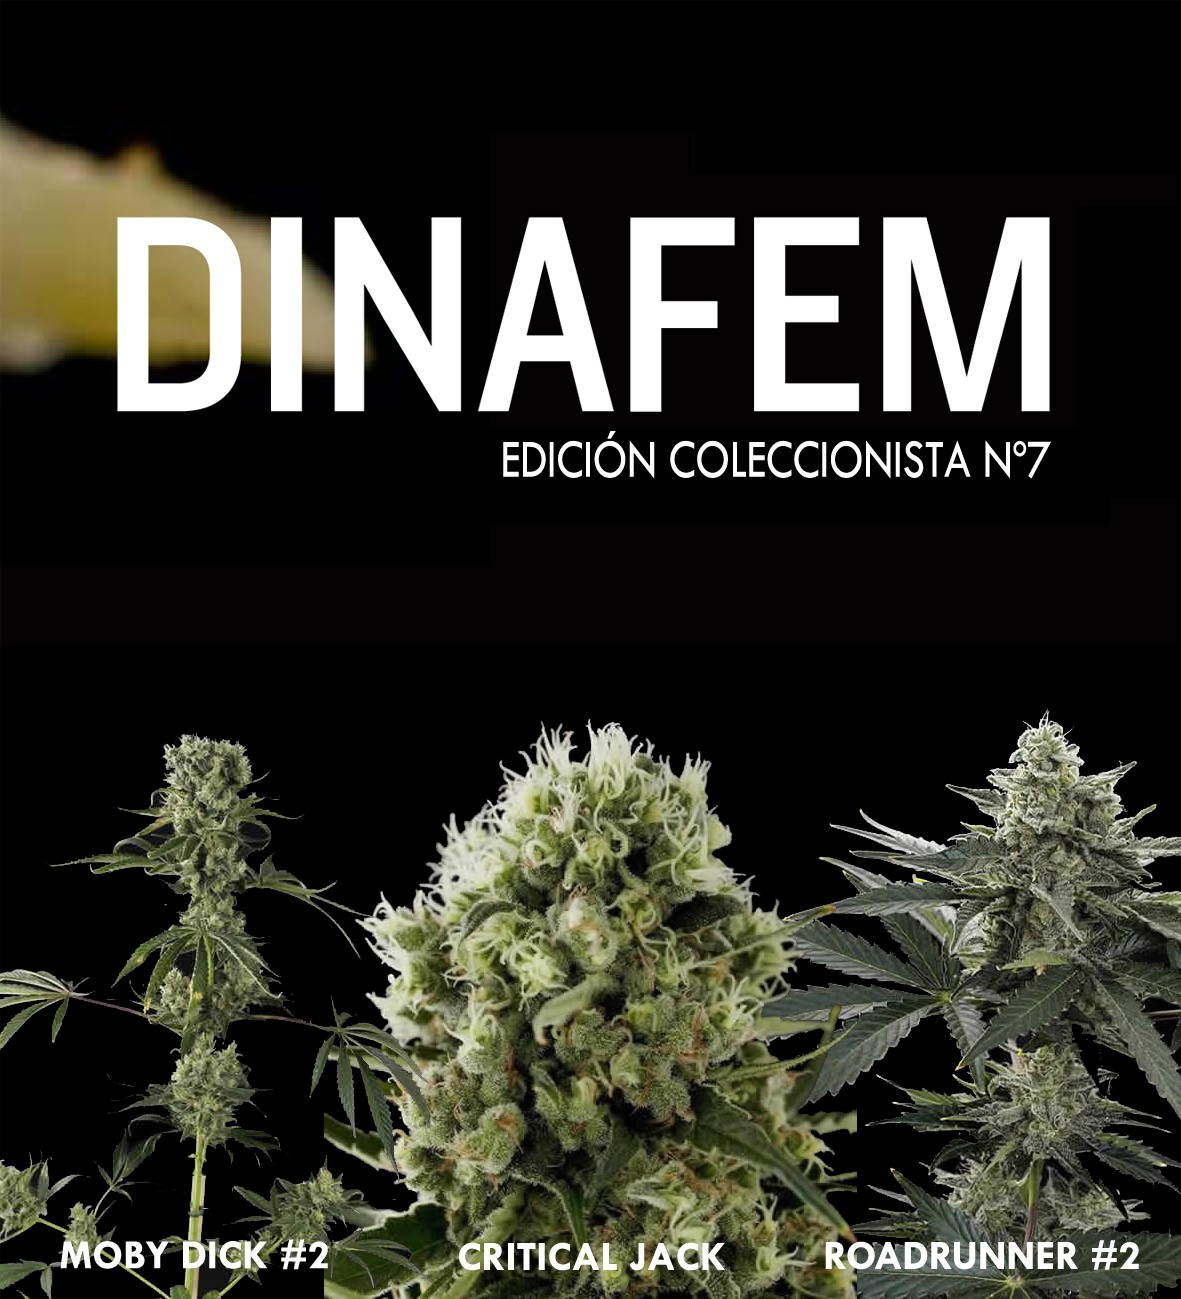 Dinafem collector # 7 6 graines